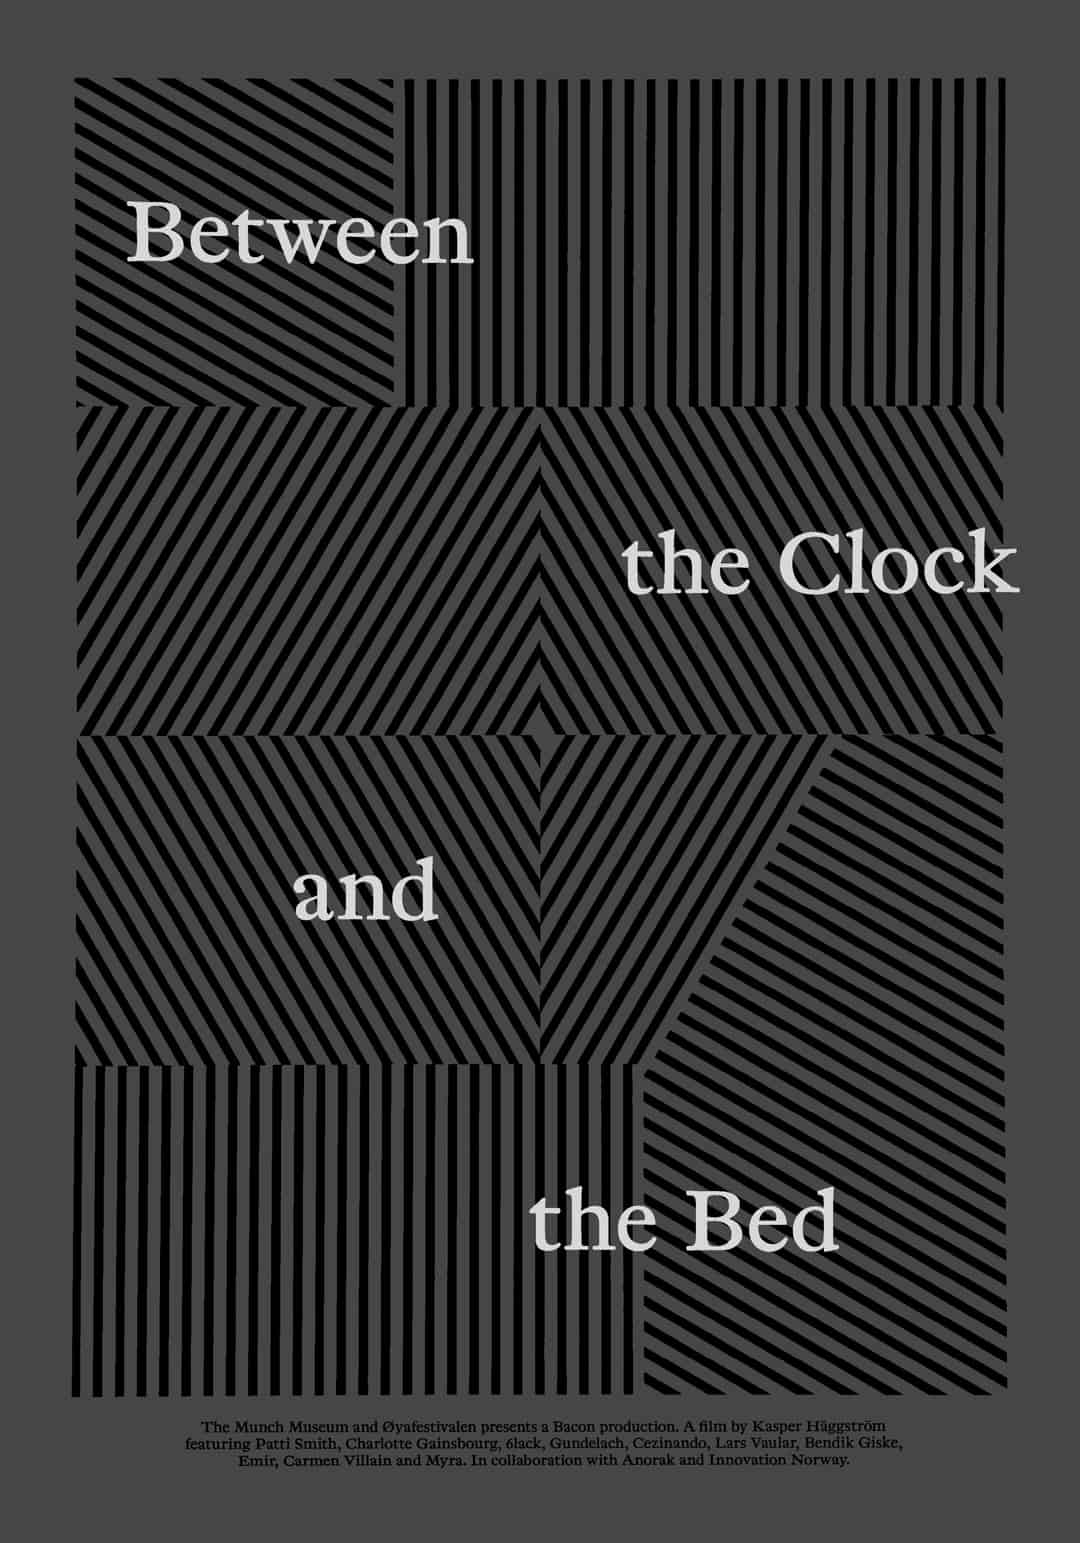 Between the Clock and the Bed